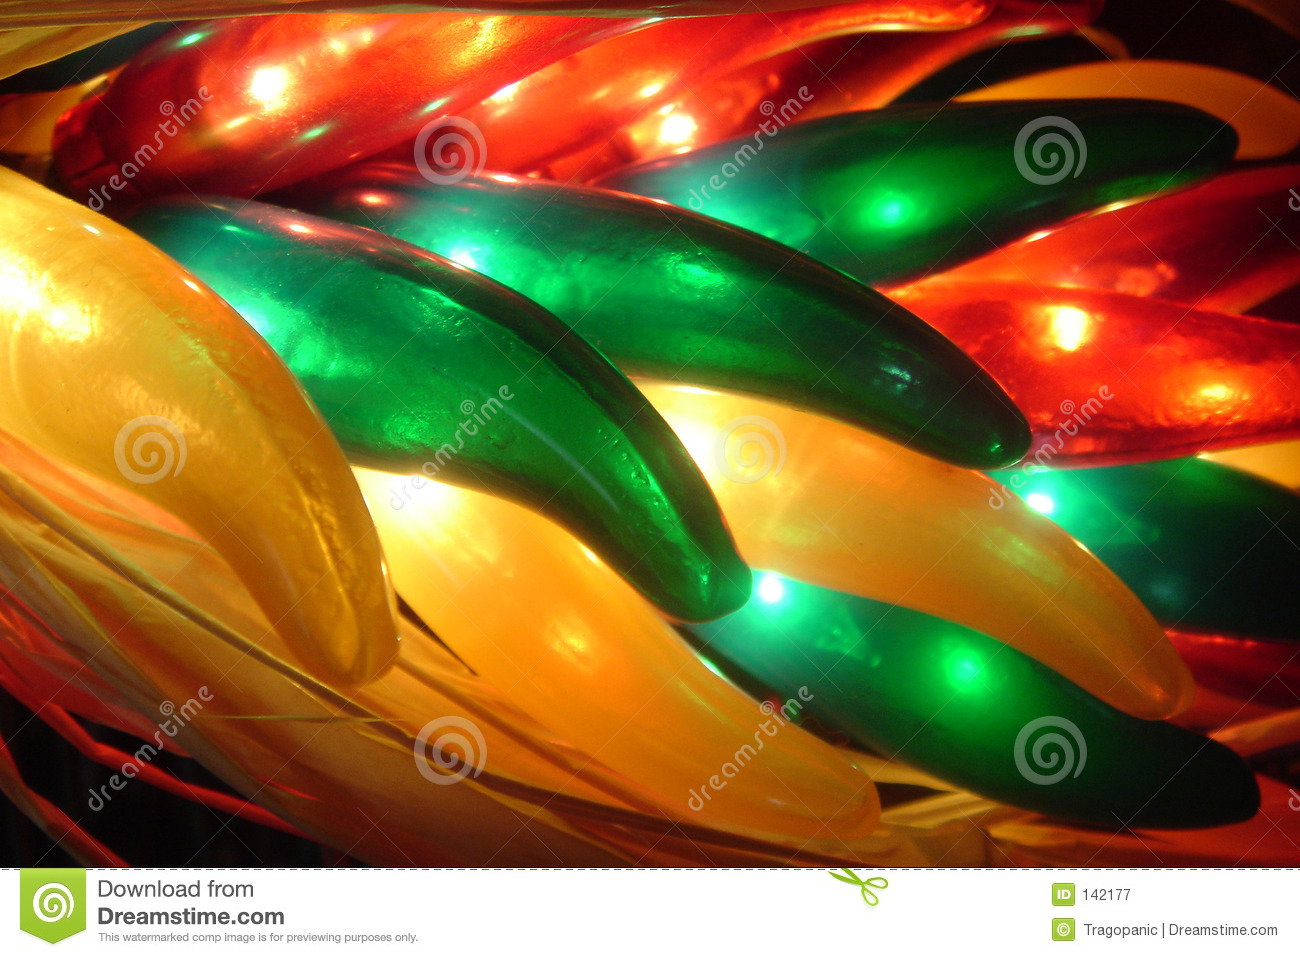 Chili lighted peppers